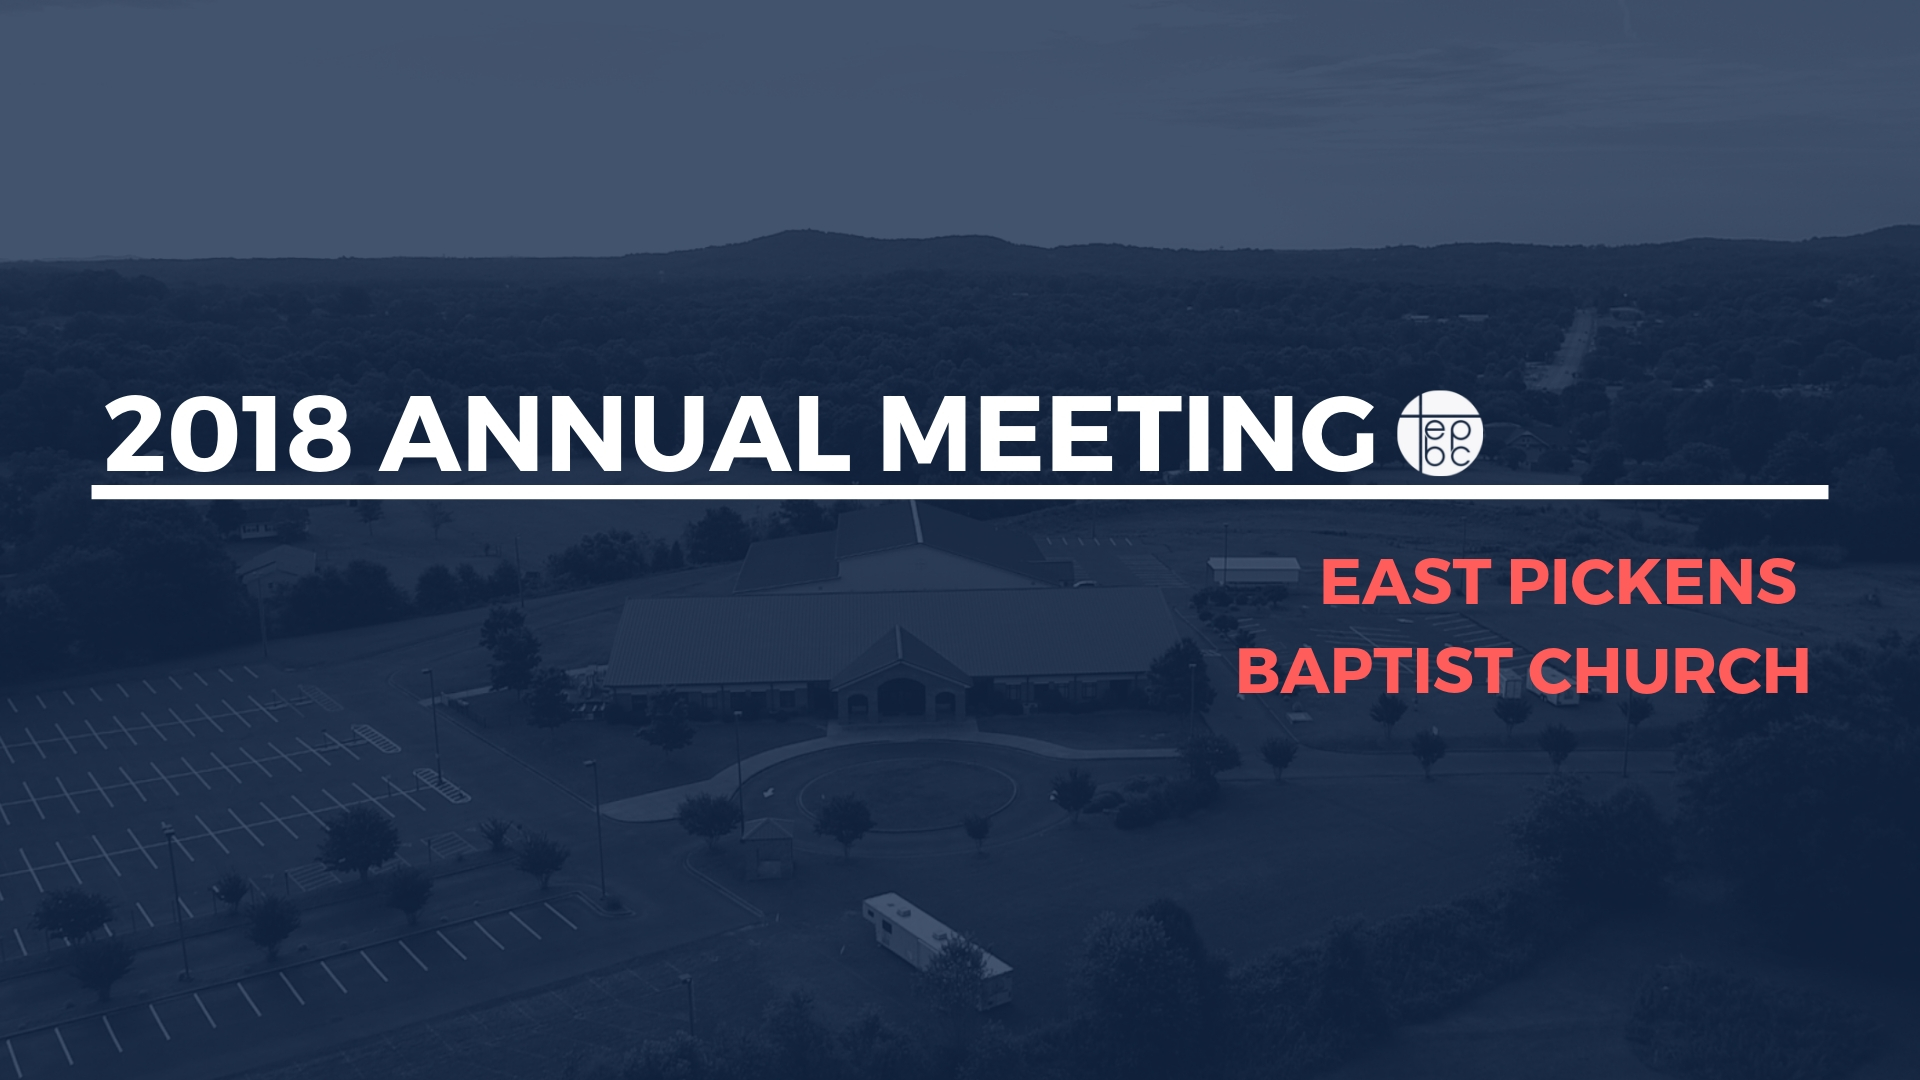 2018 Annual Meeting -